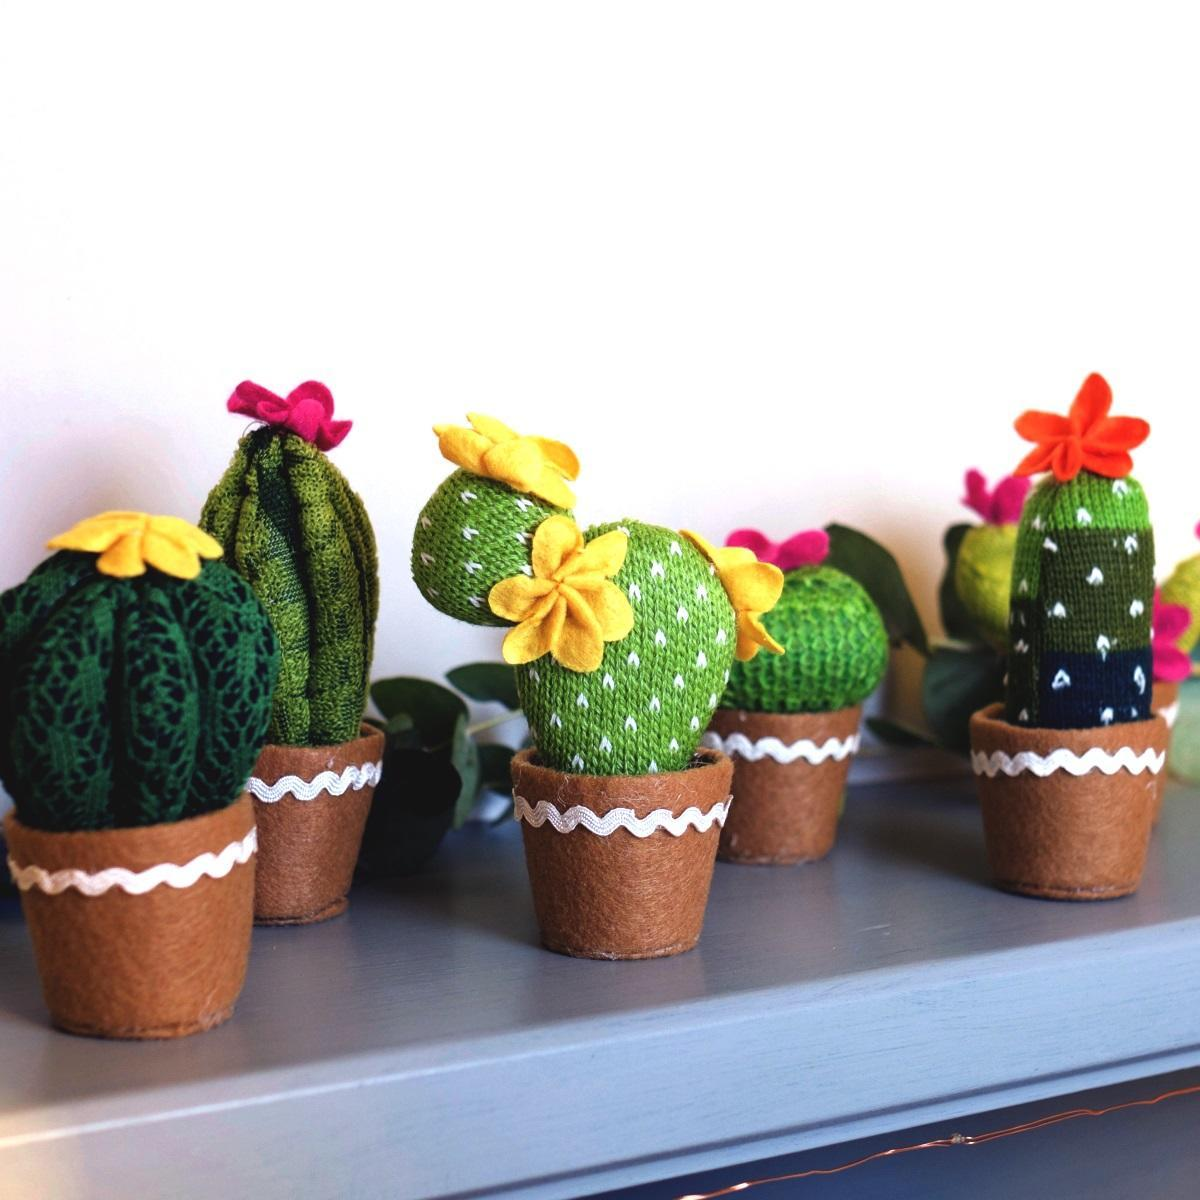 Knitted Cactus at Albert & Moo